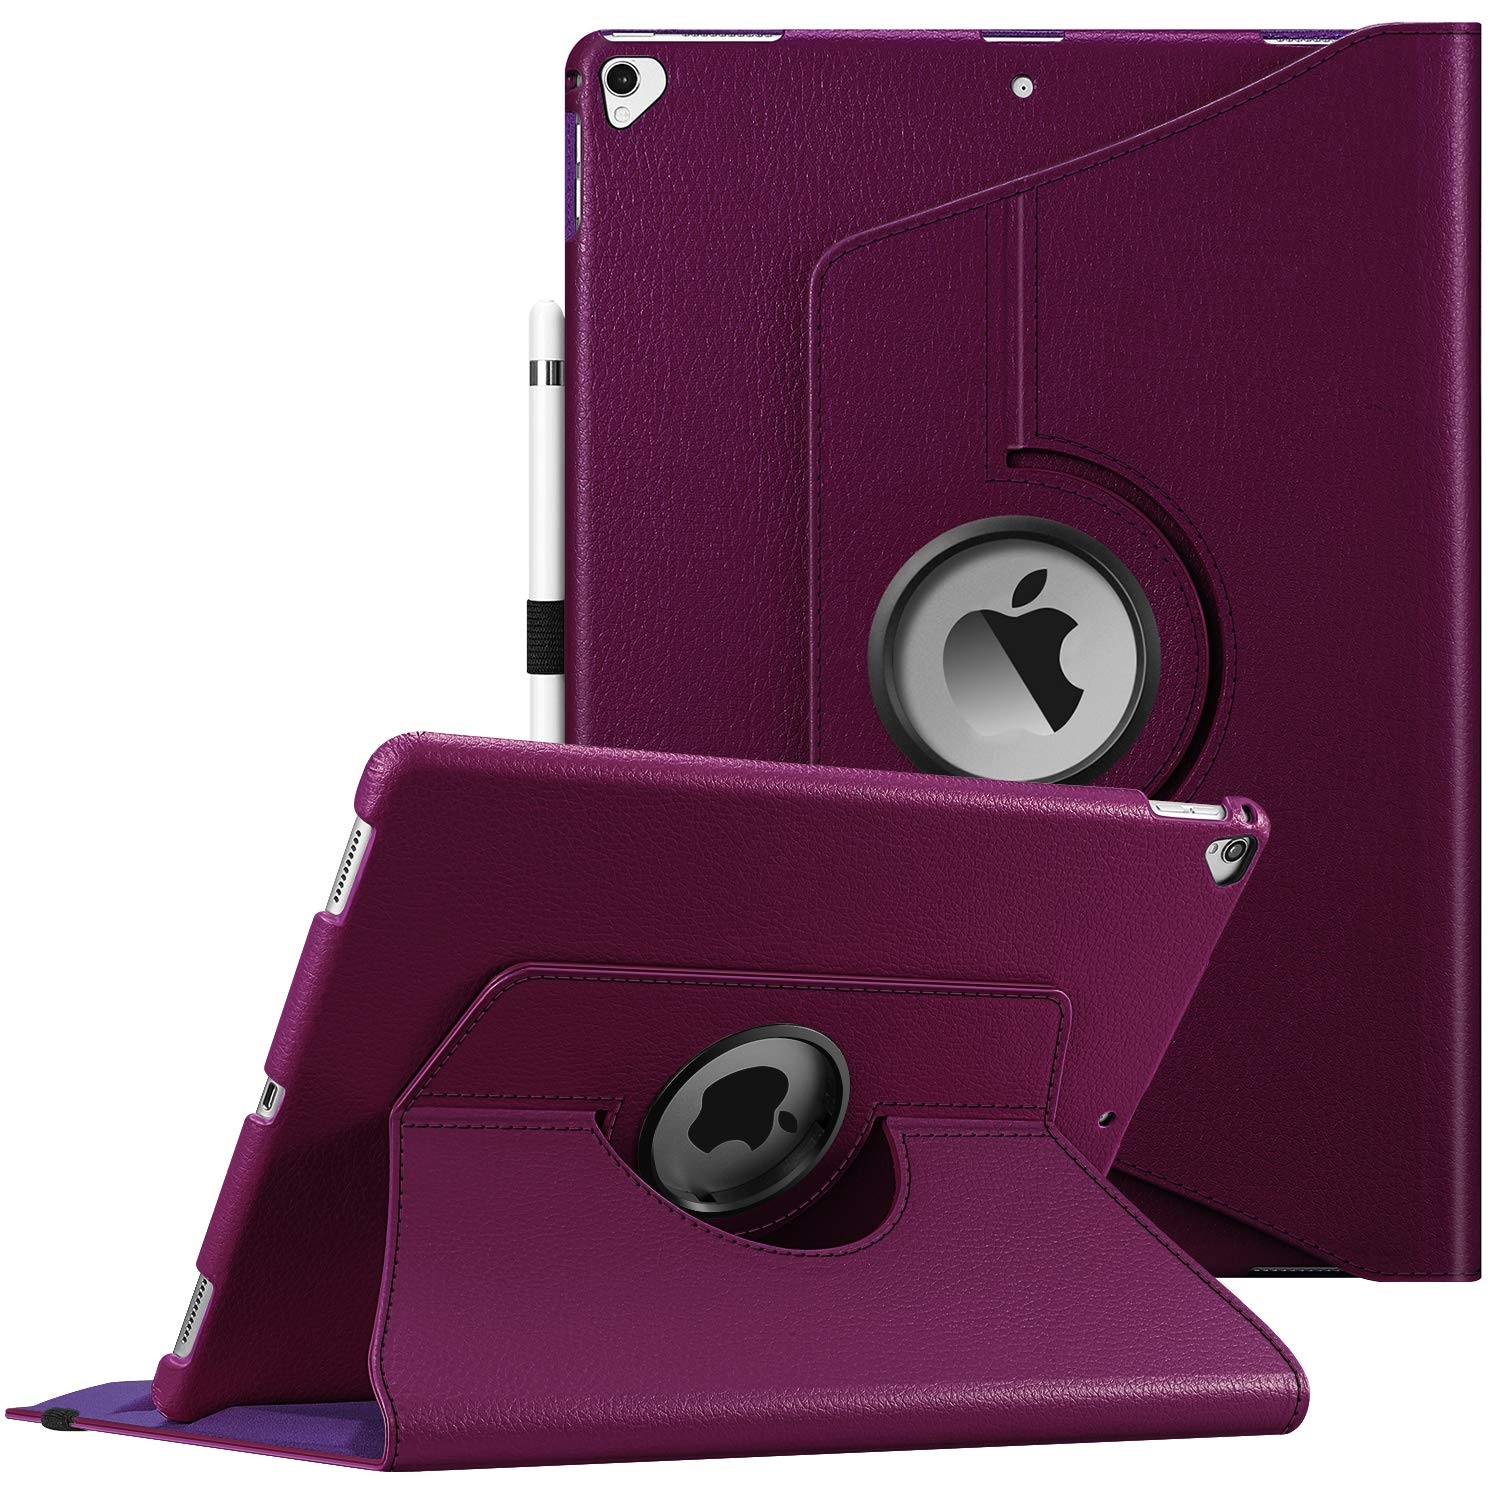 Fintie Rotating Case for iPad Pro 12.9 (2nd Gen) 2017 / iPad Pro 12.9 (1st Gen) 2015-360 Degree Rotating Stand Case with Smart Protective Cover Auto Sleep/Wake, Purple